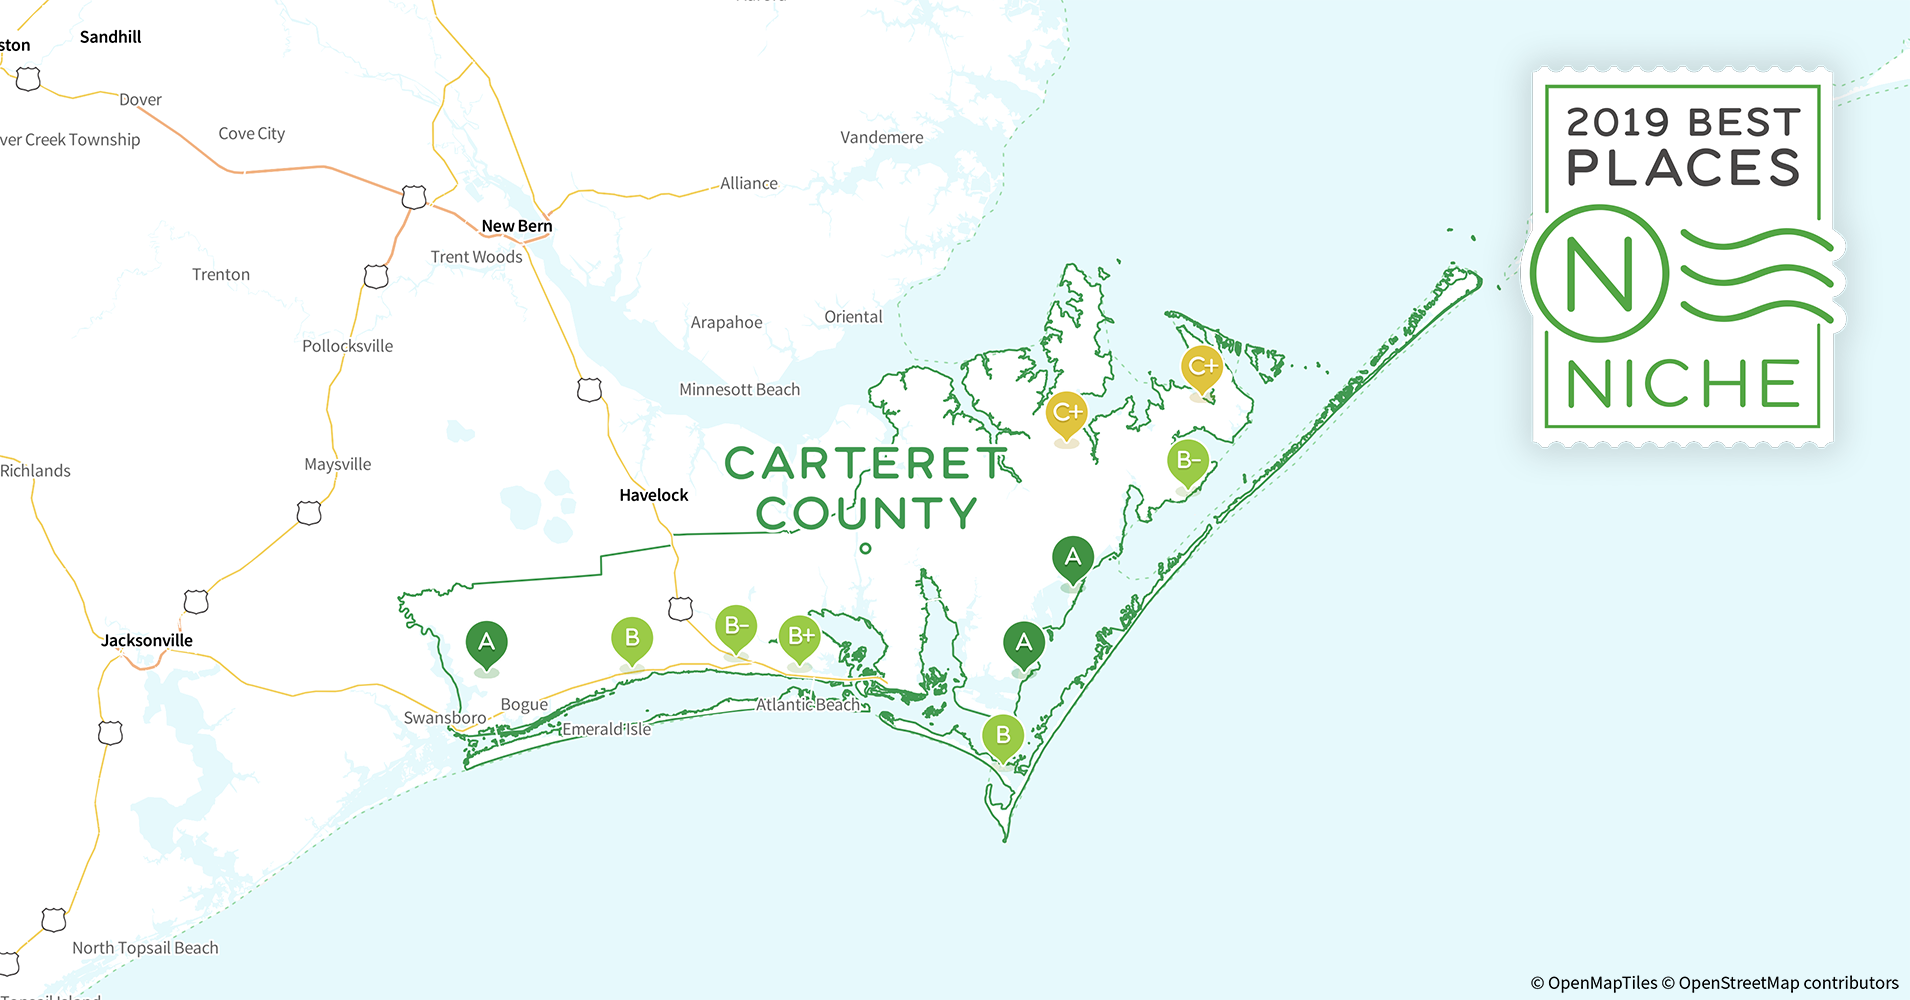 2019 Best Places to Live in Carteret County, NC - Niche Map Of Carteret County Nc on